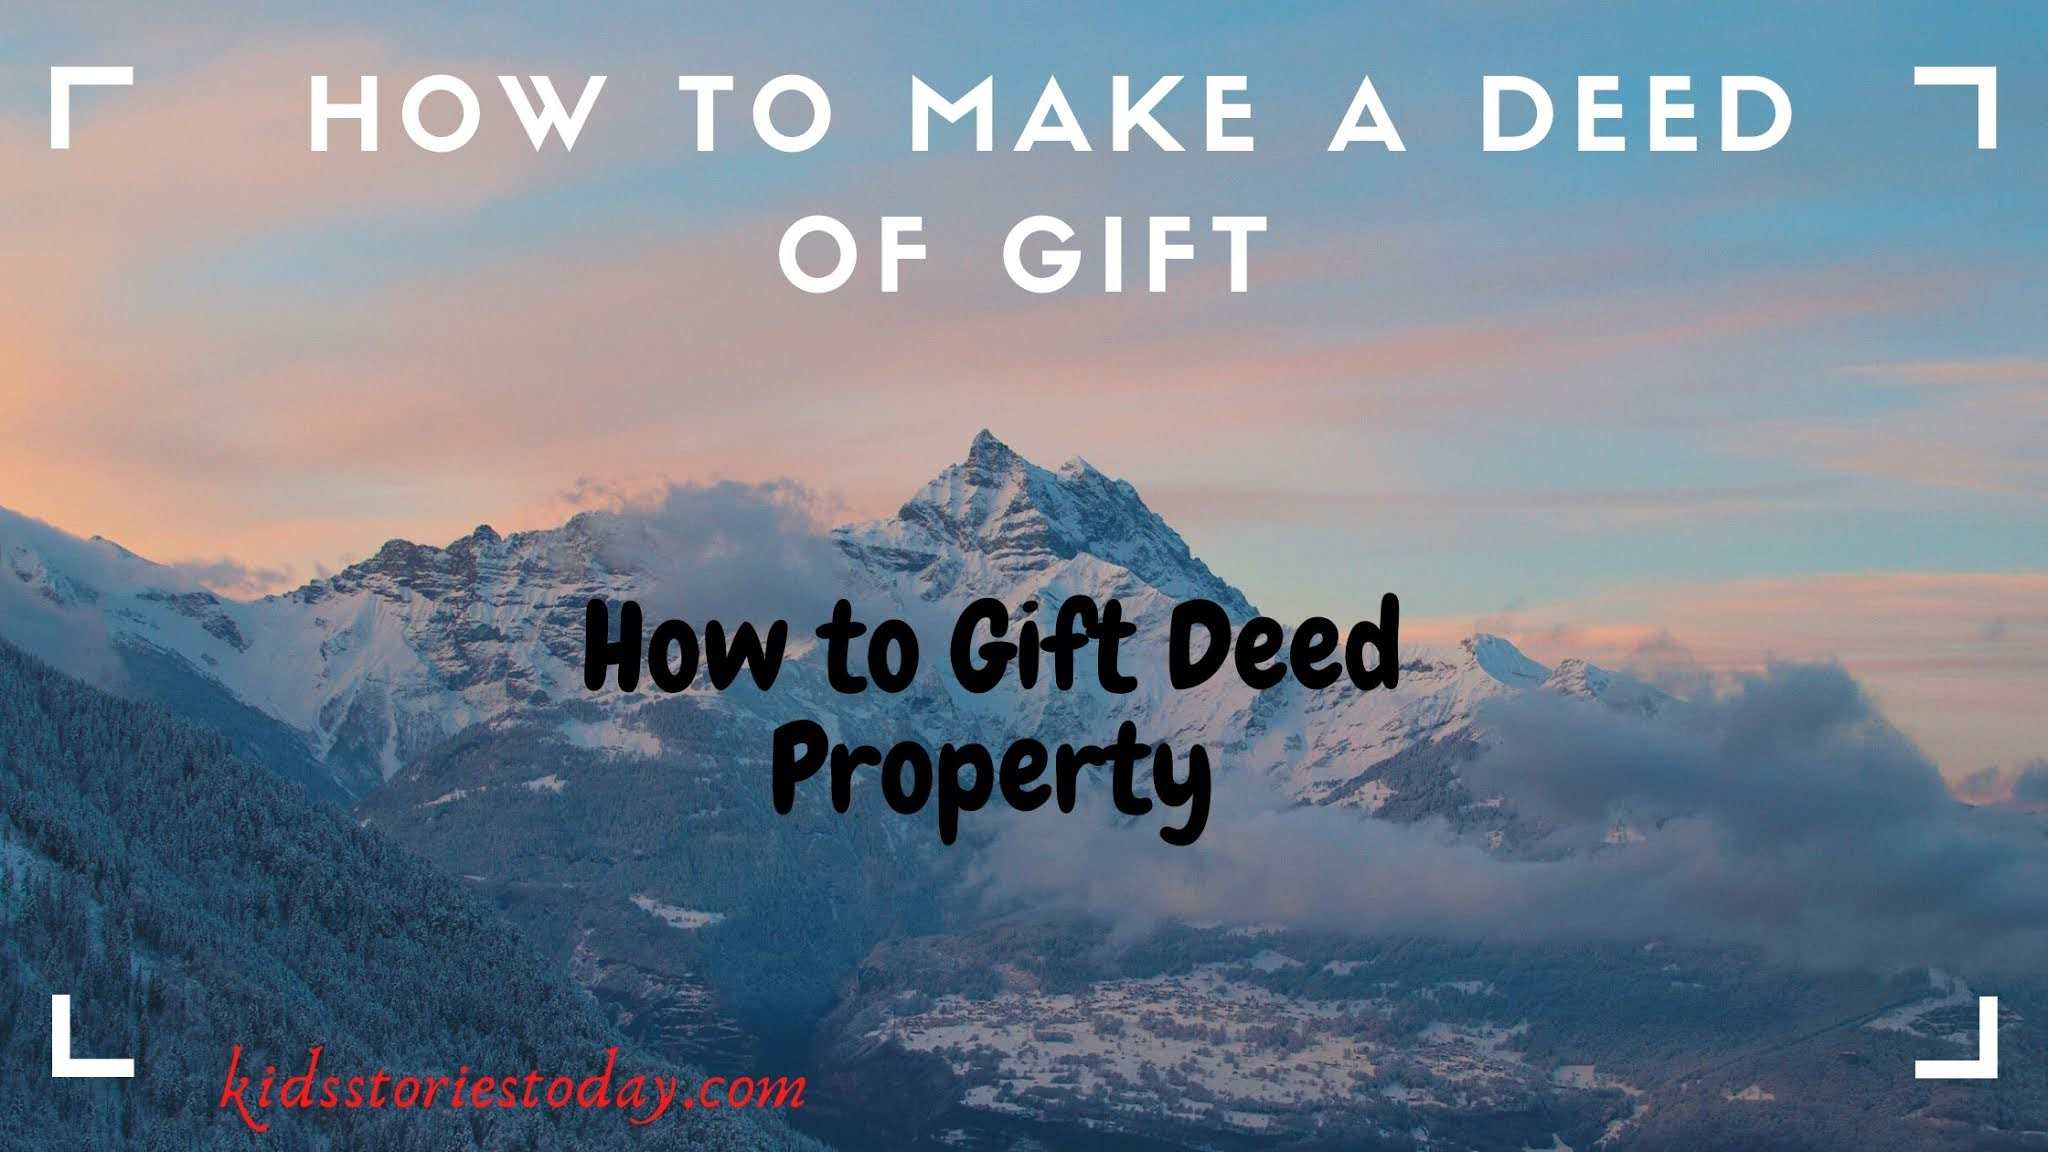 How to Gift Deed Property